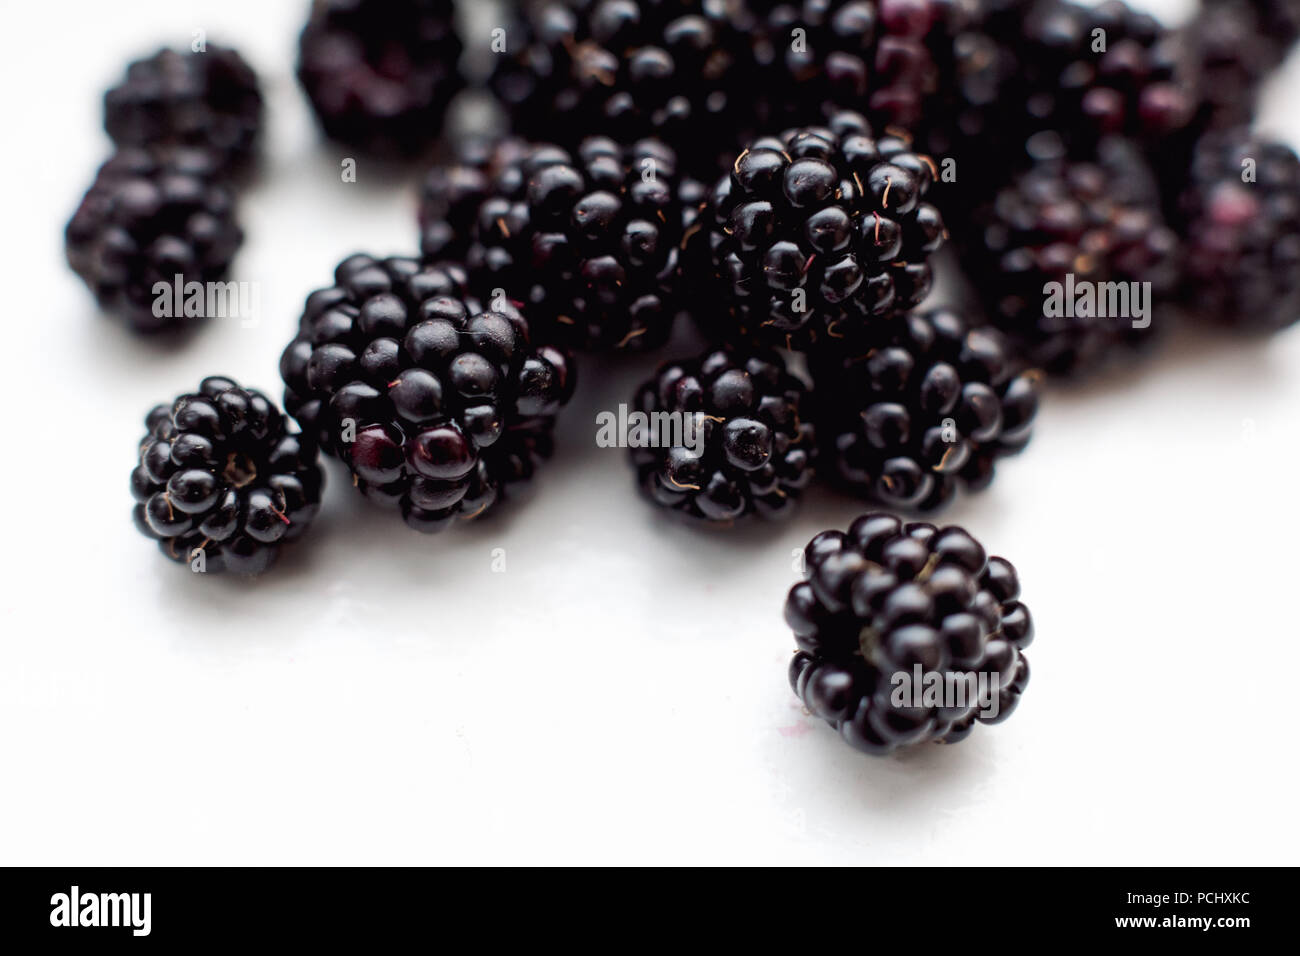 Lots of blackberries on a white background - Stock Image